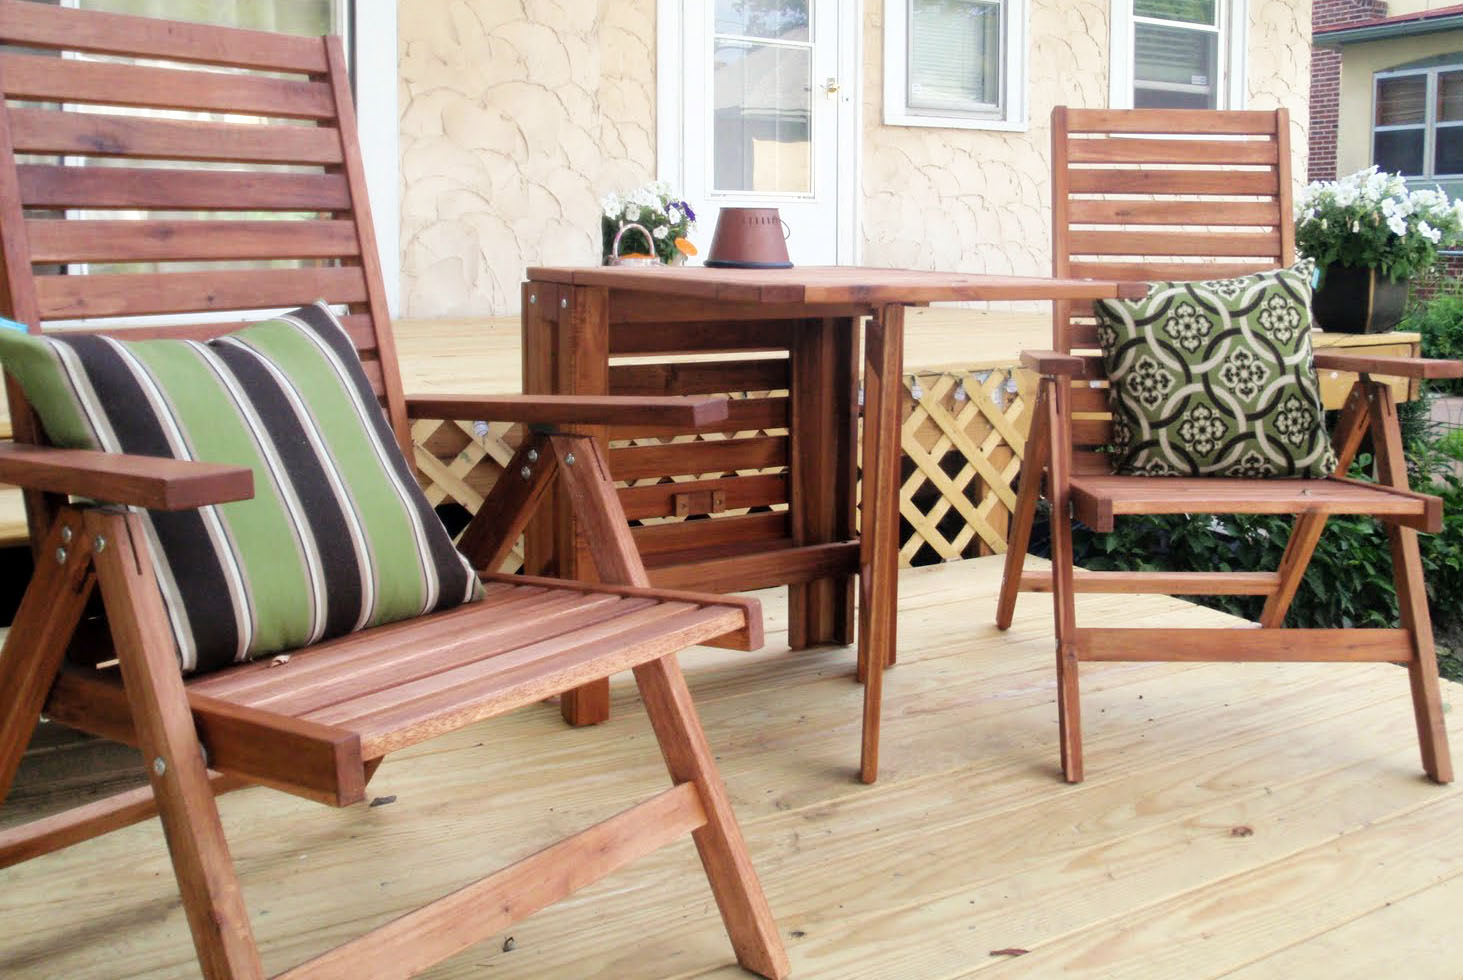 Small balcony furniture option homesfeed Small backyard patio furniture